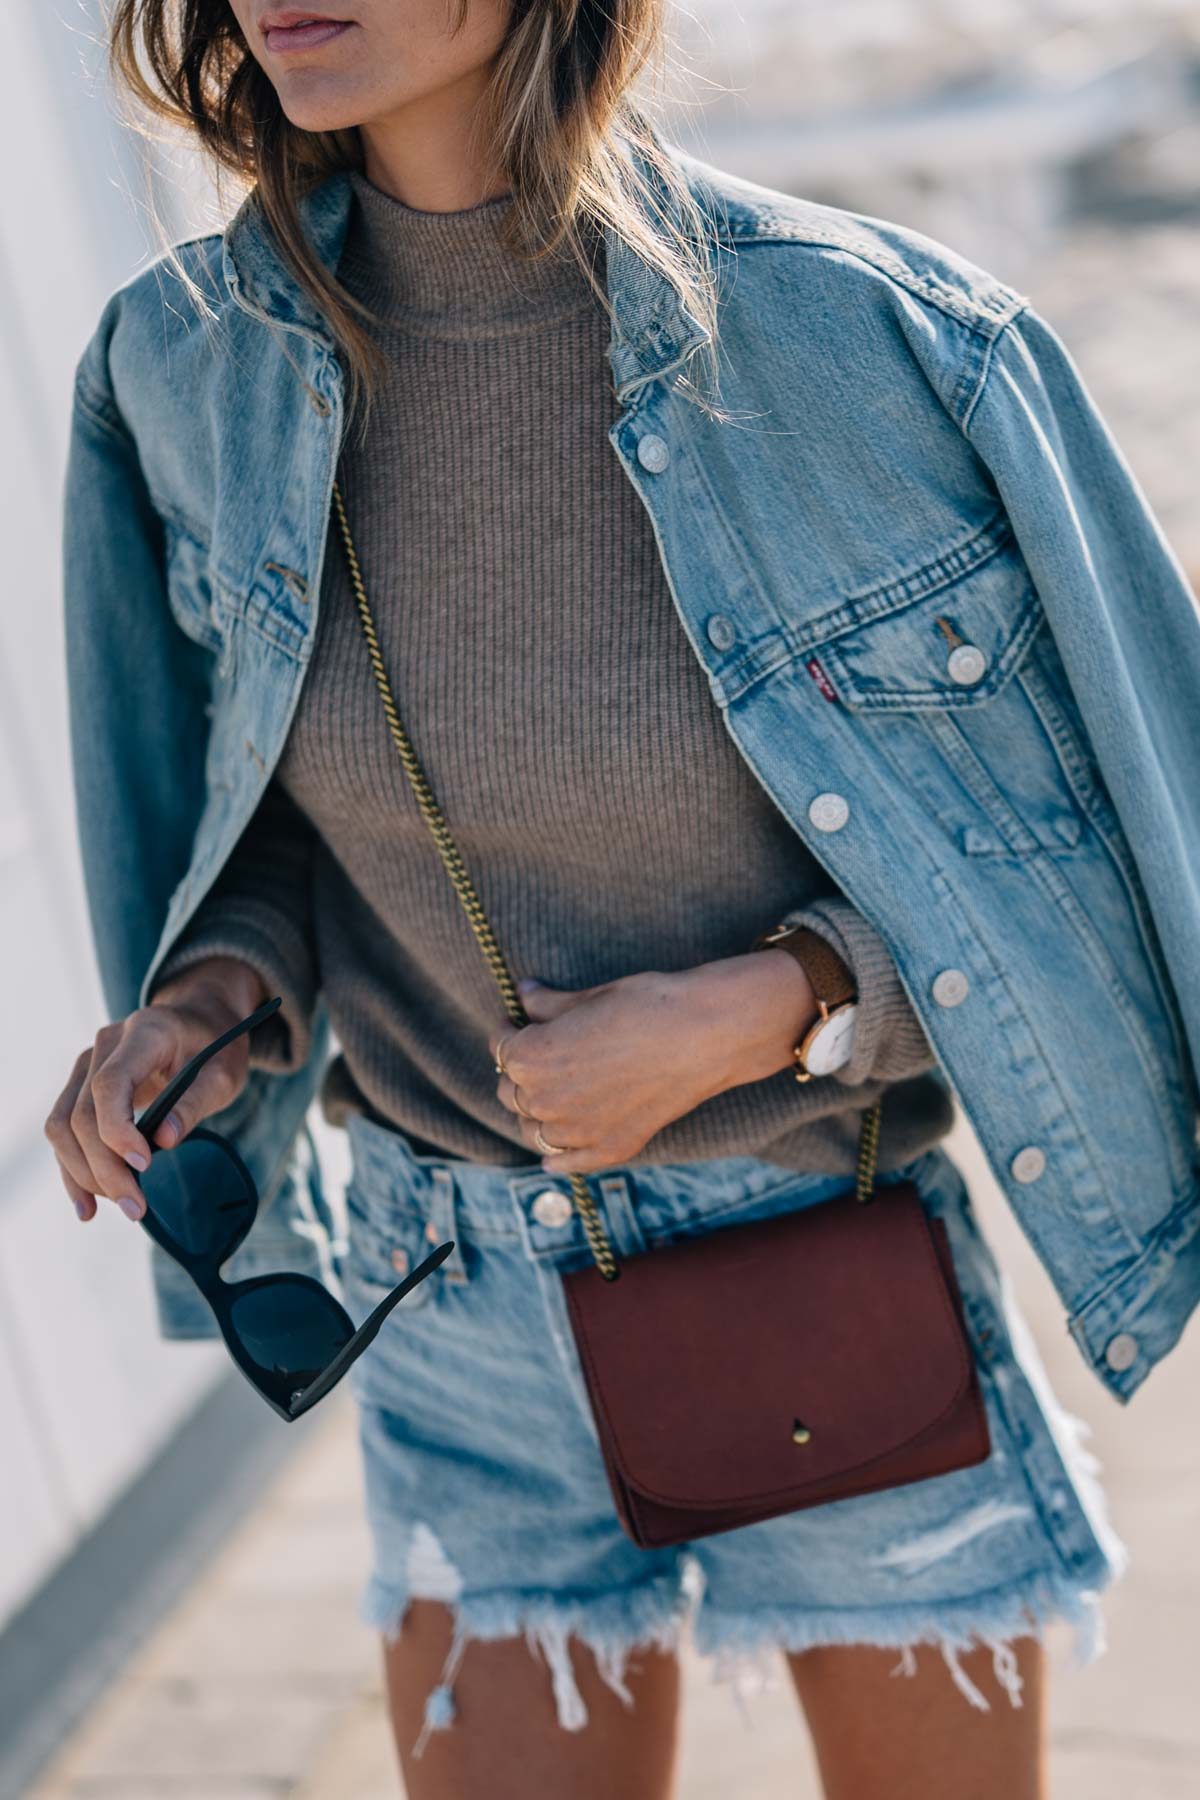 Jess Kirby wears a levis denim trucker jacket, cashmere sweater and denim shorts with a madewell crossbody bag